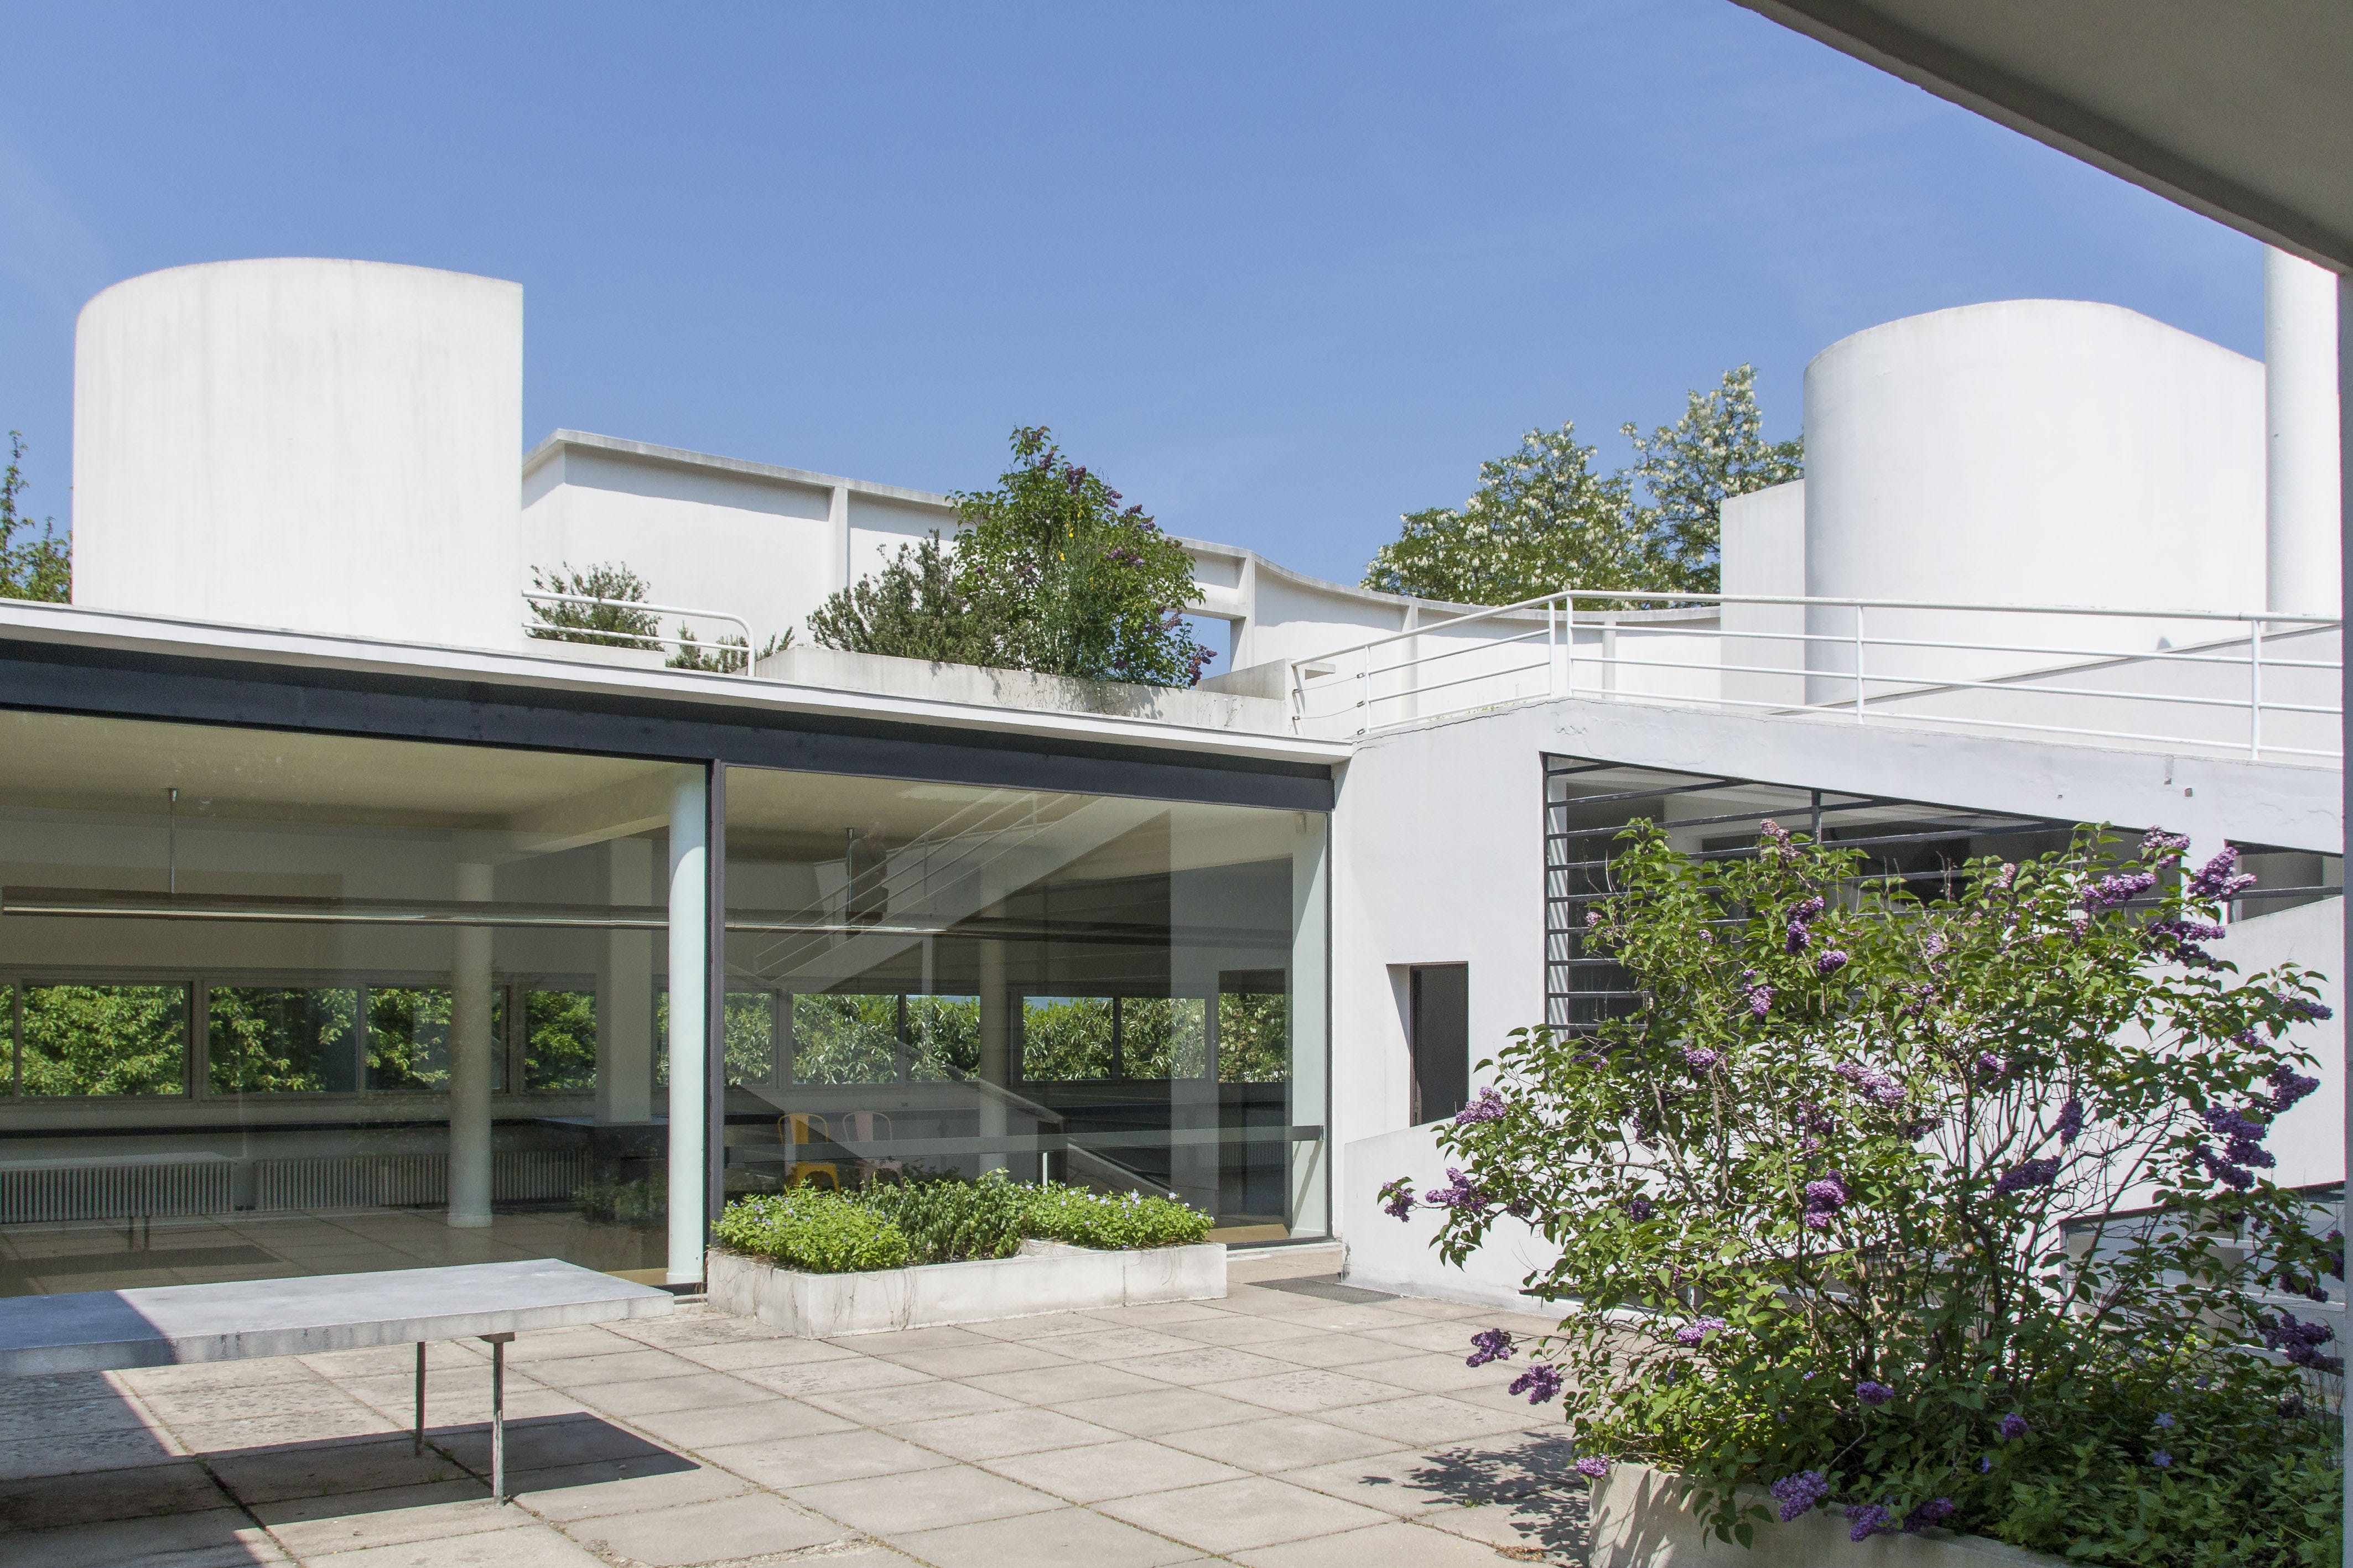 Free stock photo of courtyard, family house, LeCorbusier, modern architecture